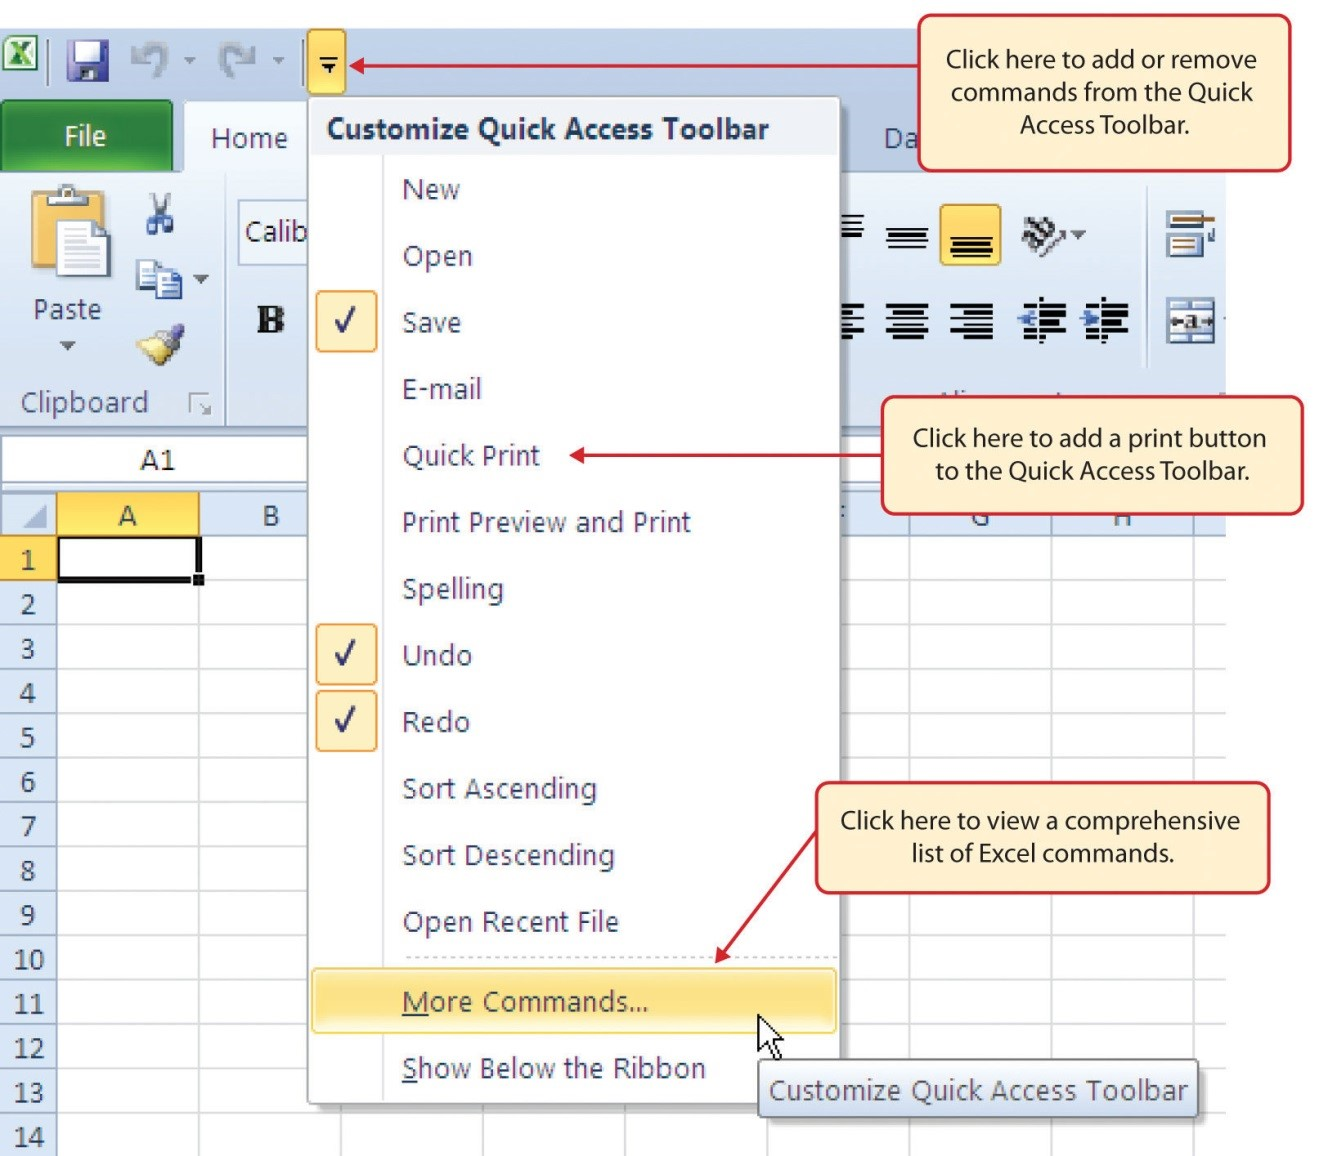 Customize Quick Access Toolbar with frequently used commands. Open Quick Access Toolbar via keyboard: Alt, F, T, arrow down. Via Keyboard to open Quick Access Toolbar: Alt, F, T, arrow down.